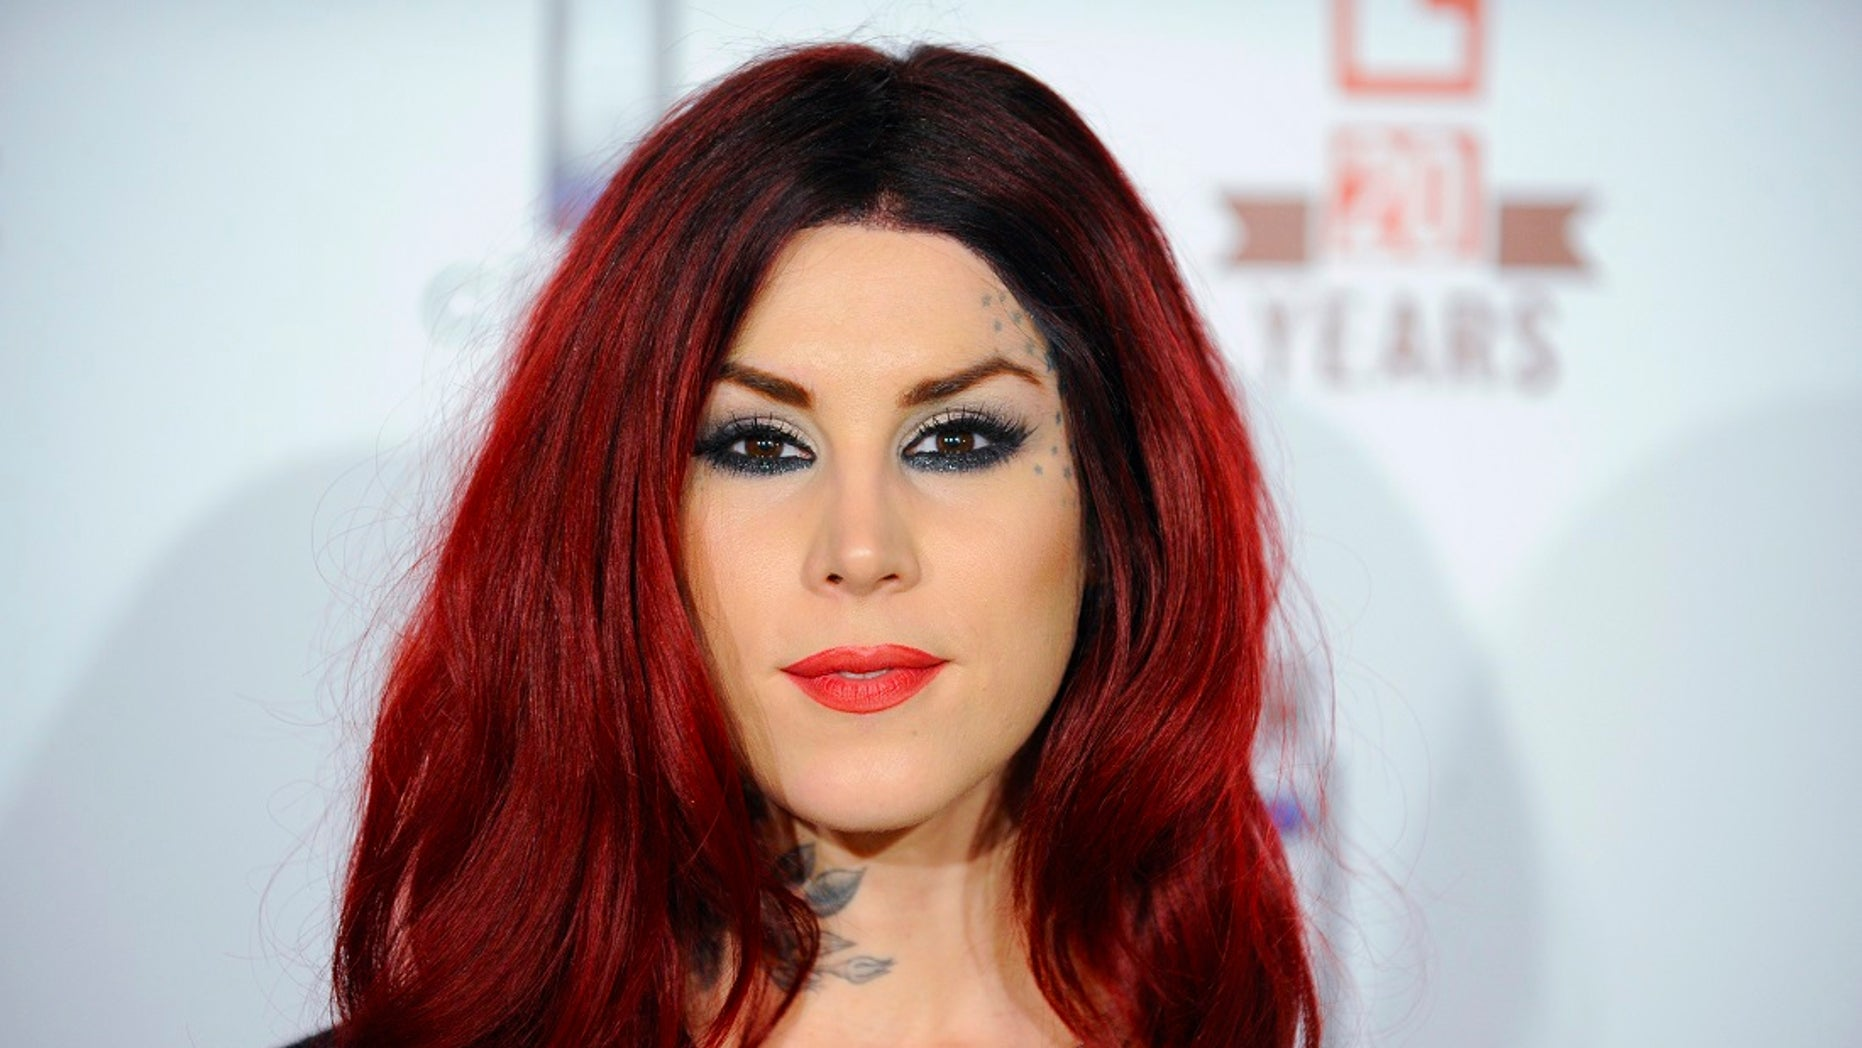 A Kansas woman claims she won a contest sponsored by a company created by the reality TV star Kat Von D (pictured here) -- but later was disqualified over a post on her Instagram account which supported then-presidential candidate Donald Trump.